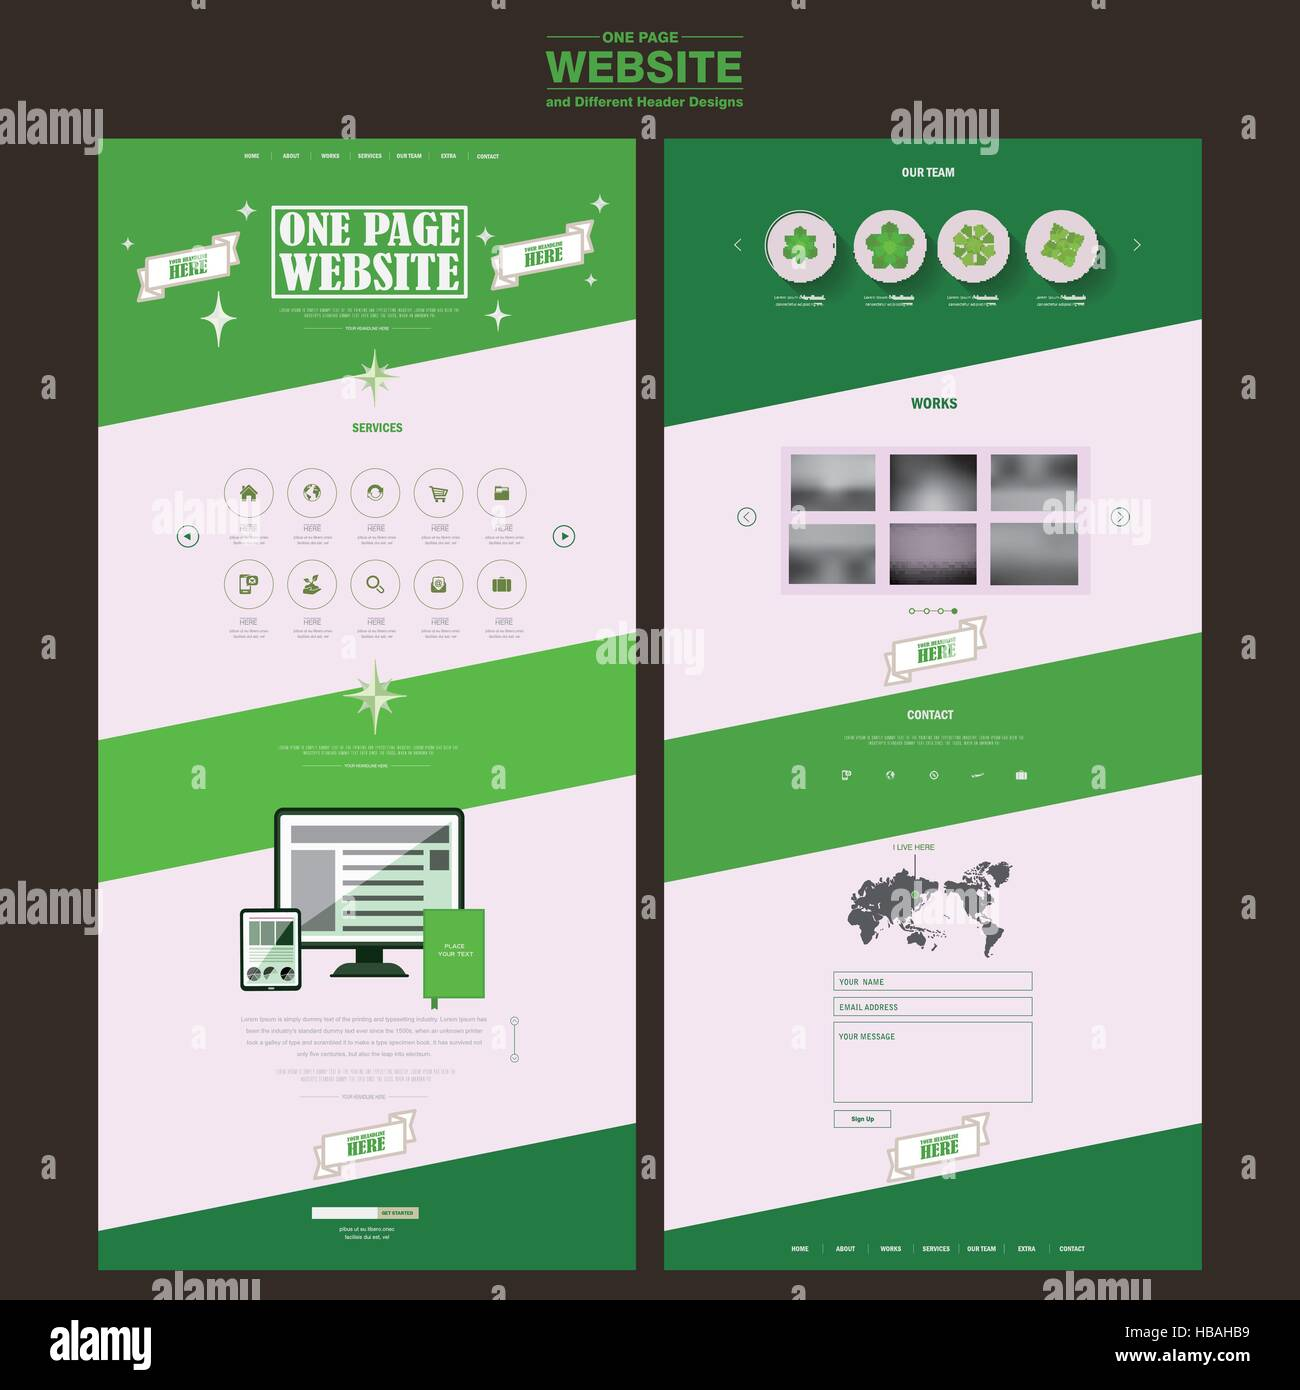 Free for commercial use high quality images Simplicity One Page Website Template Design In Green And White Stock Vector Image Art Alamy